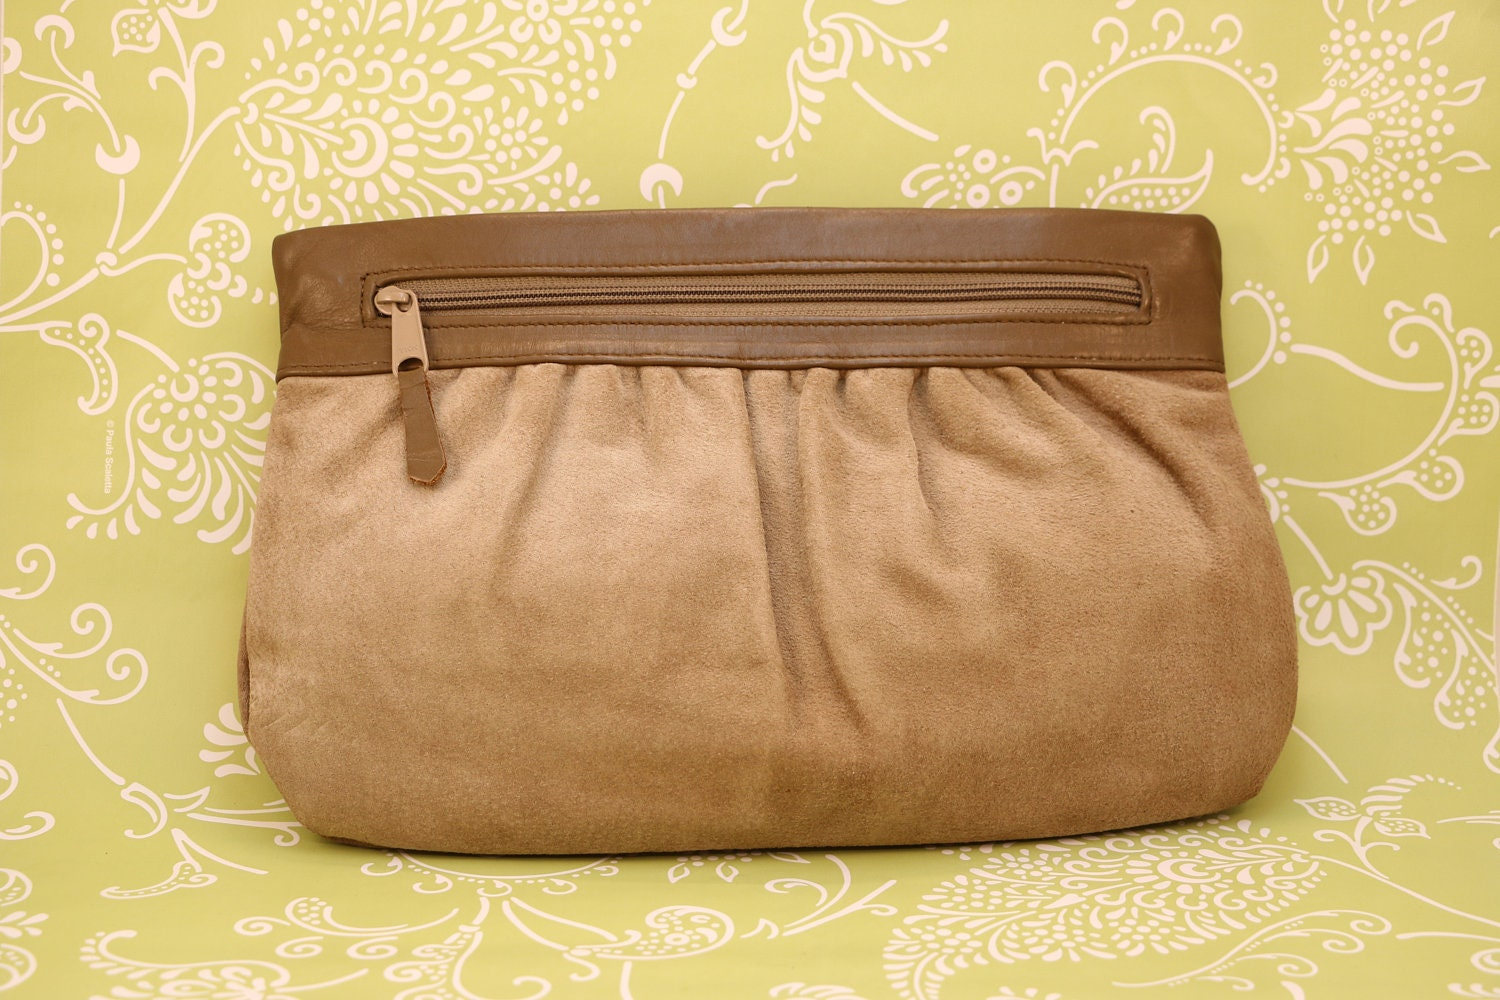 a662dda4701d Brown suede clutch 1980 s vintage Letisse with pleating and in excellent  condition.